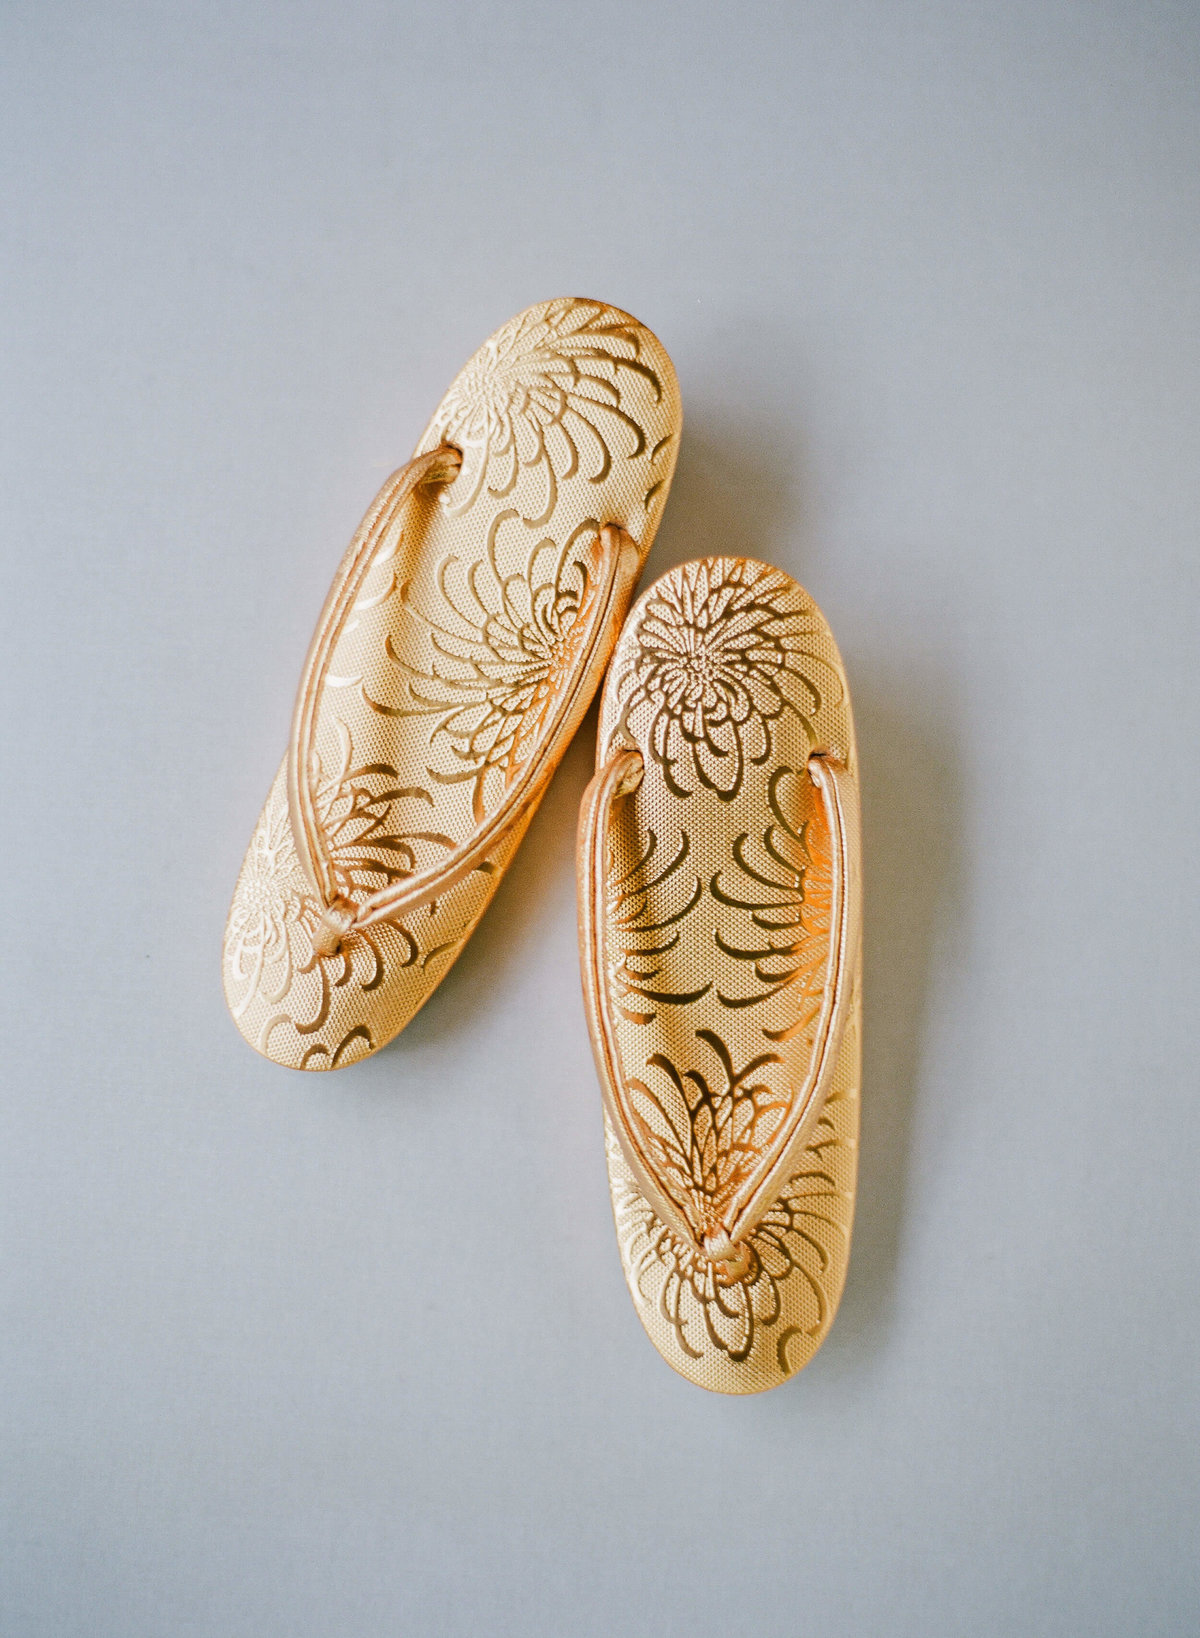 7-KTMerry-weddings-japanese-slippers